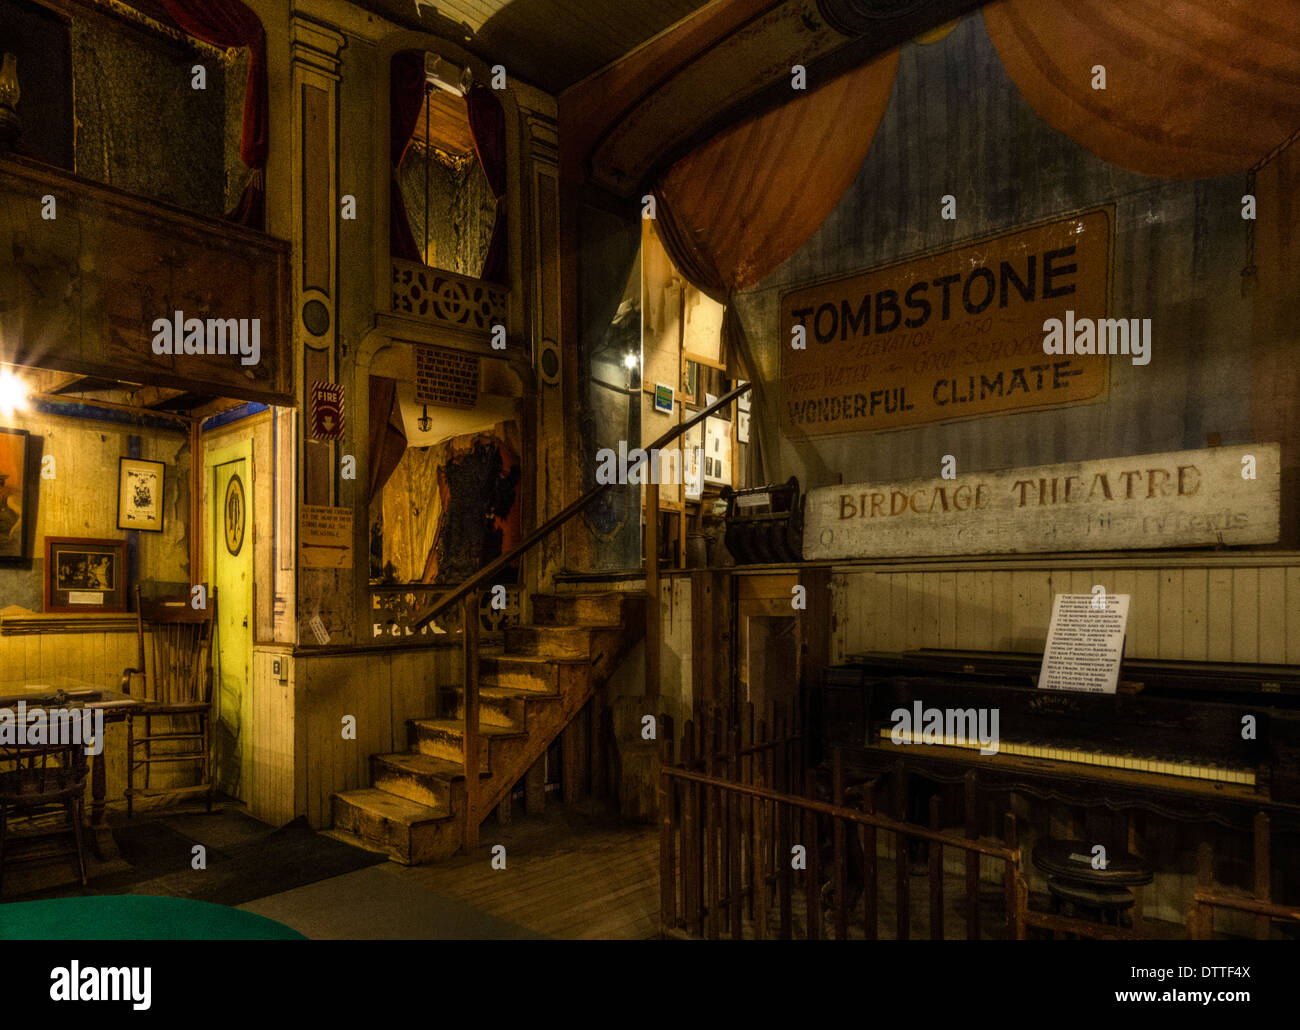 A view of the stage at the Bird Cage Theater in historic Tombstone Arizona - Stock Image